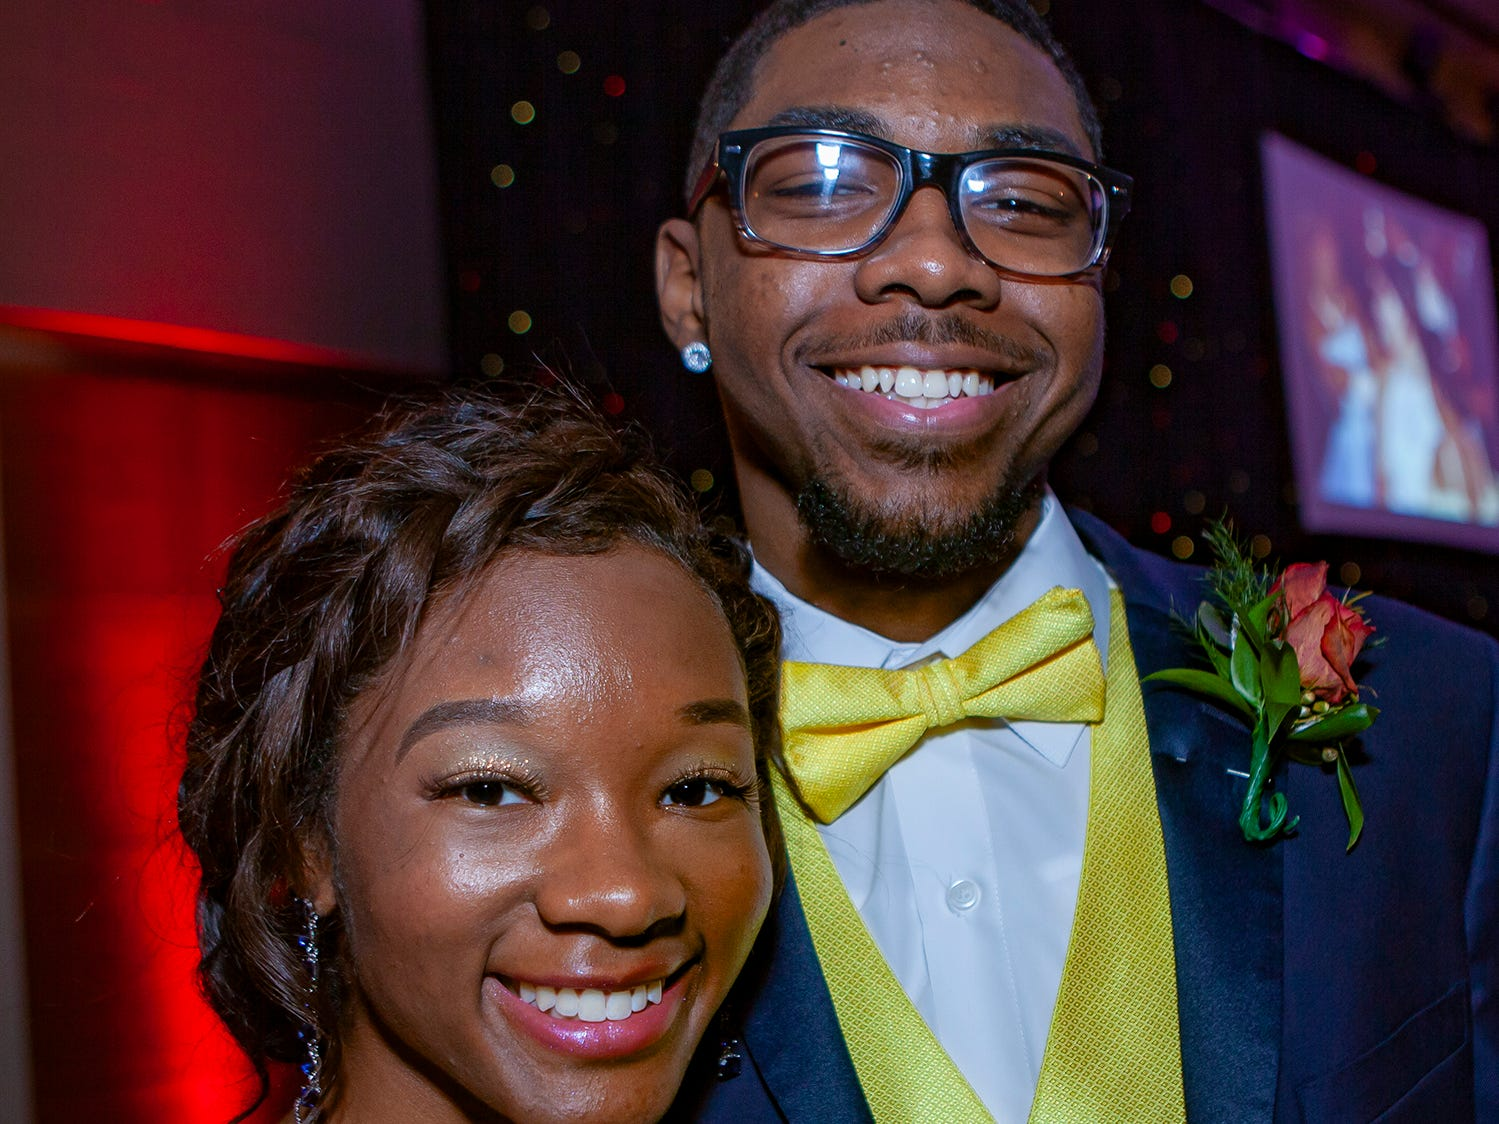 Zion Ross and Camari Robinson at Riverdale's prom, held Saturday, April 27, 2019 at MTSU's Student Union Building.